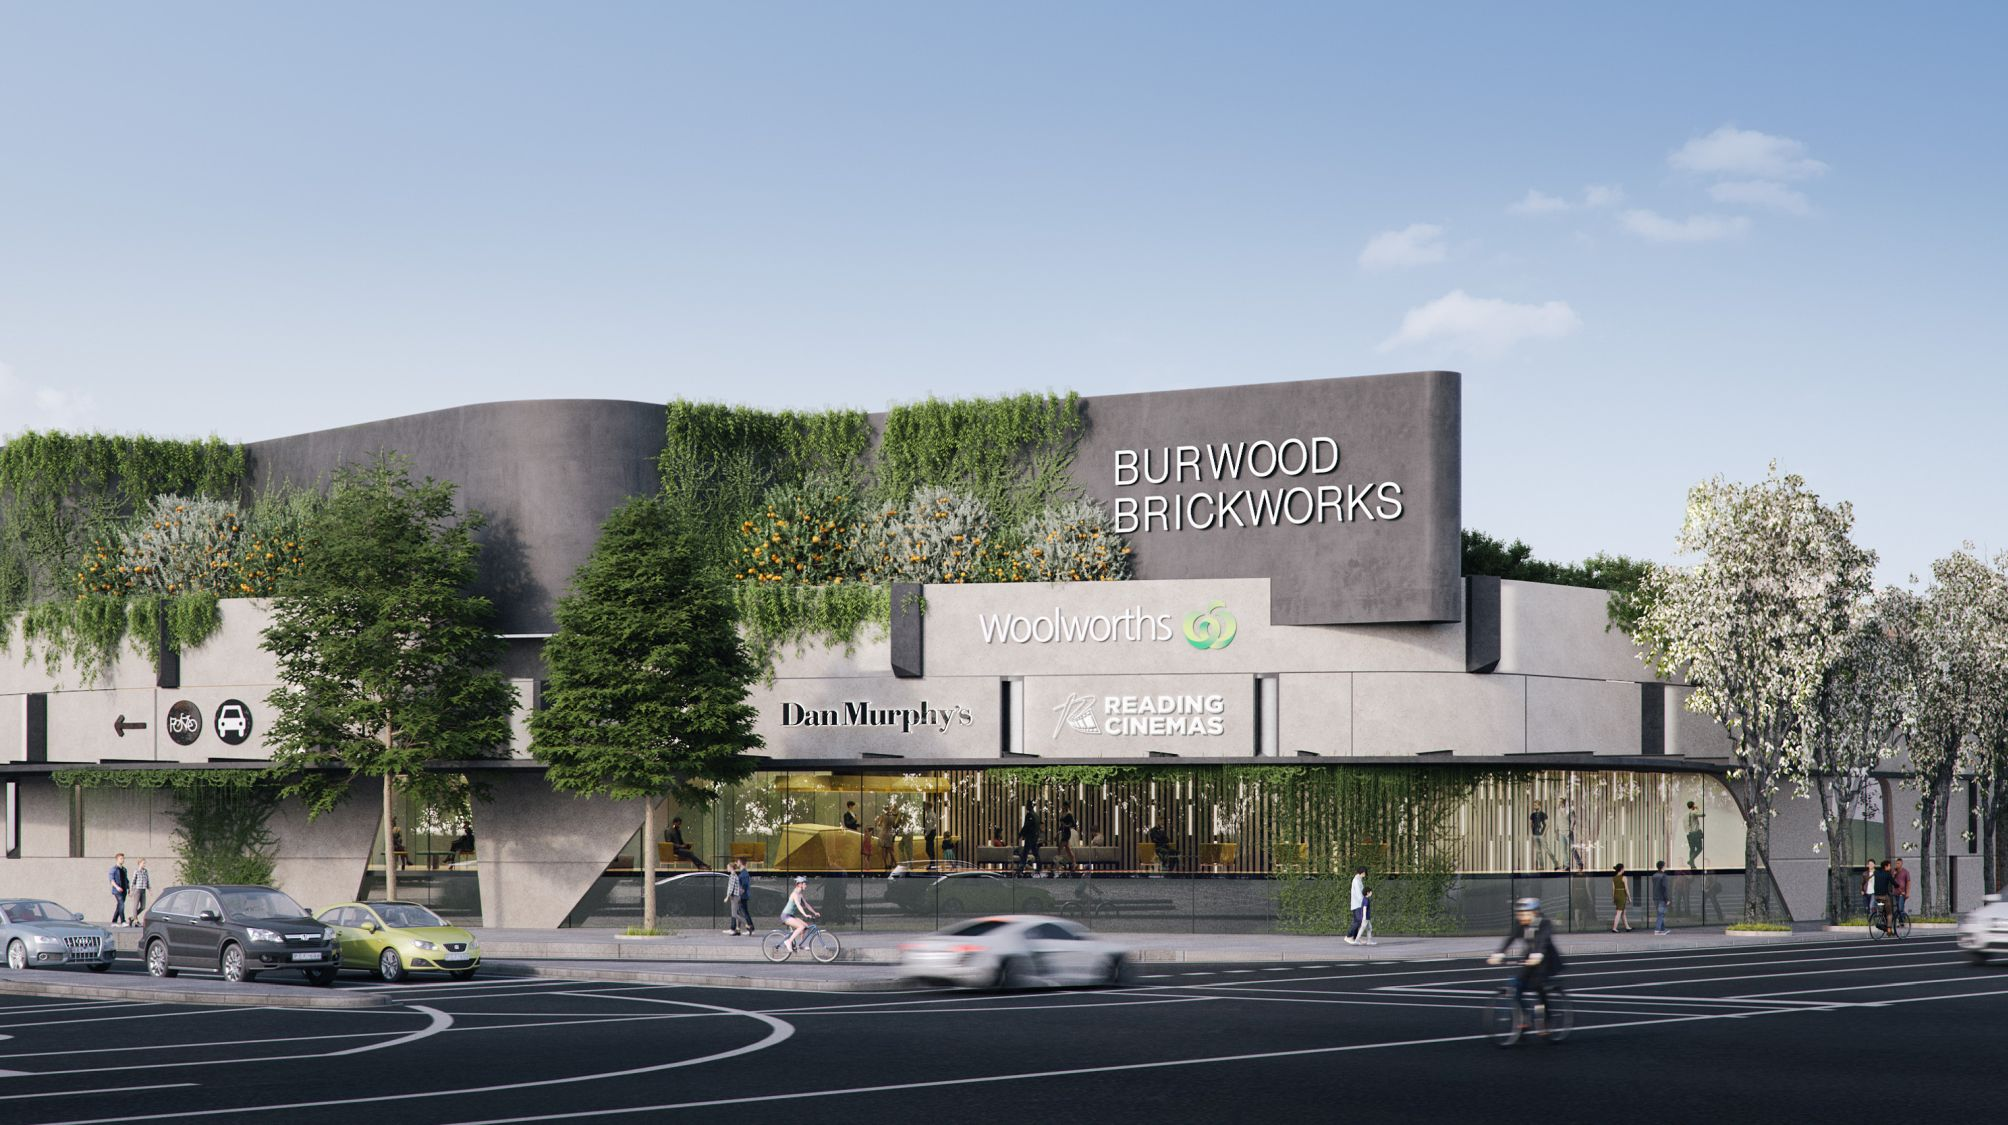 Burwood Brickworks Reading Cinemas